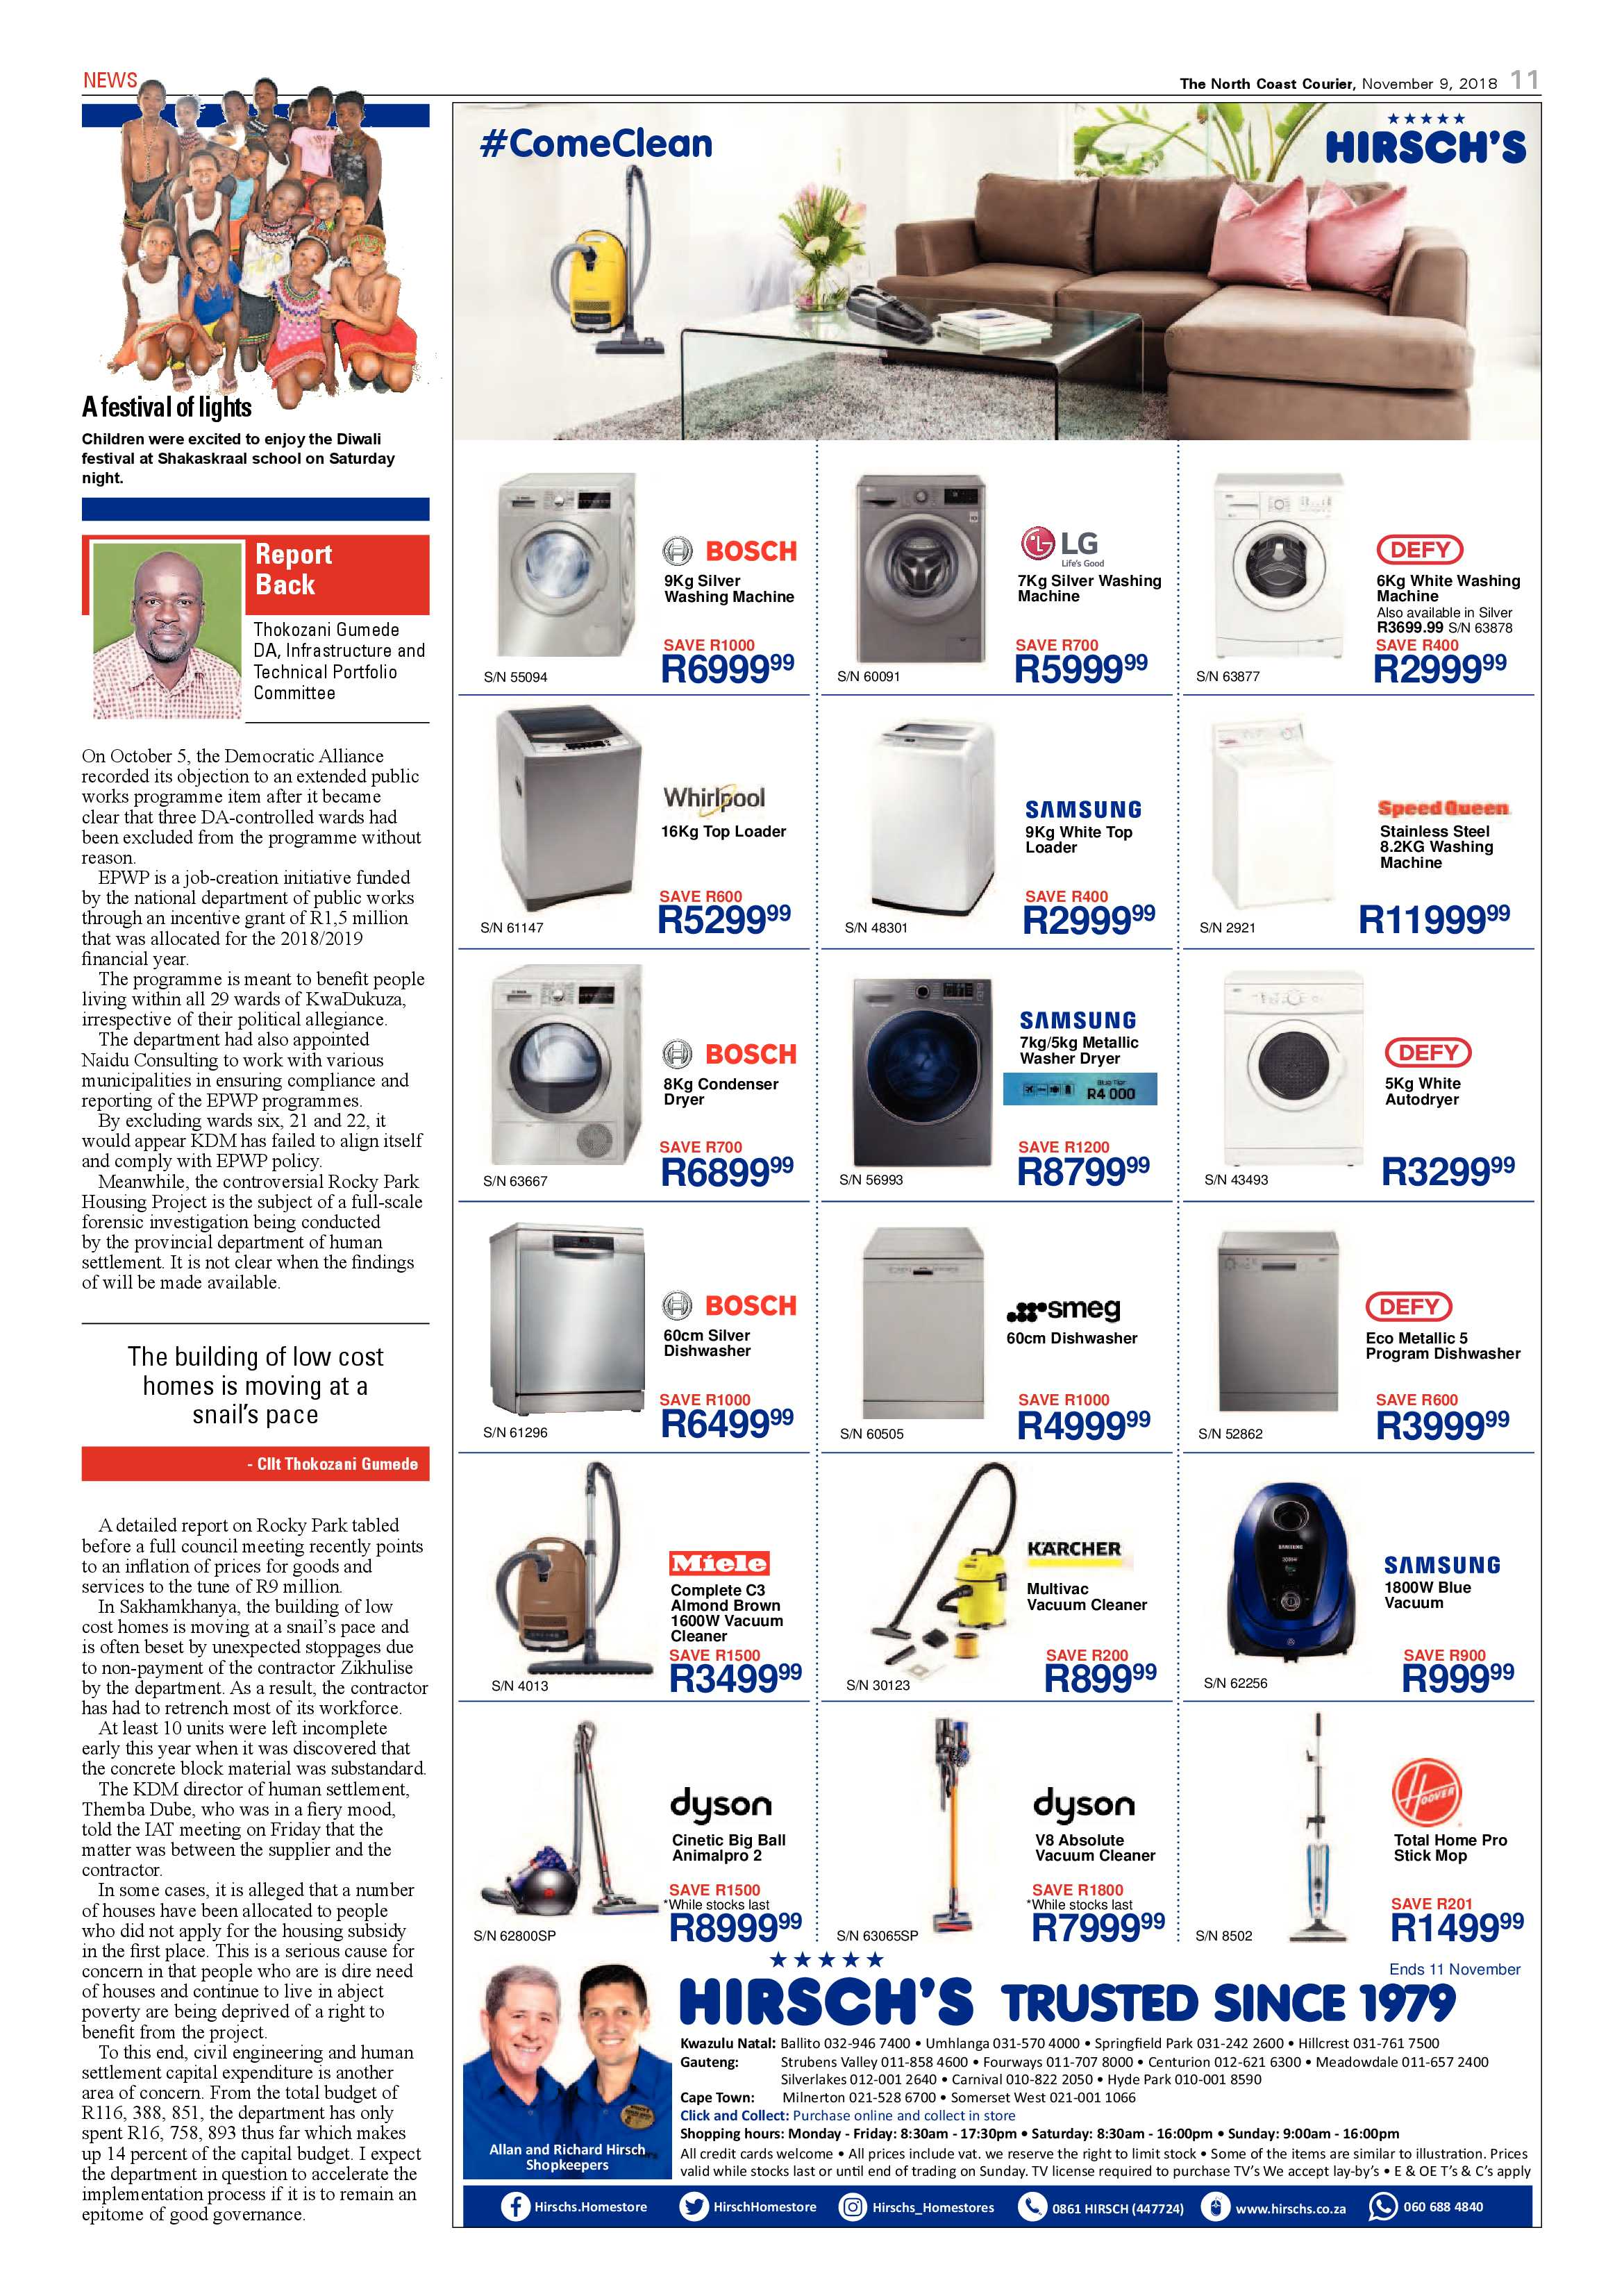 north-coast-courier-09-november-2018-epapers-page-11